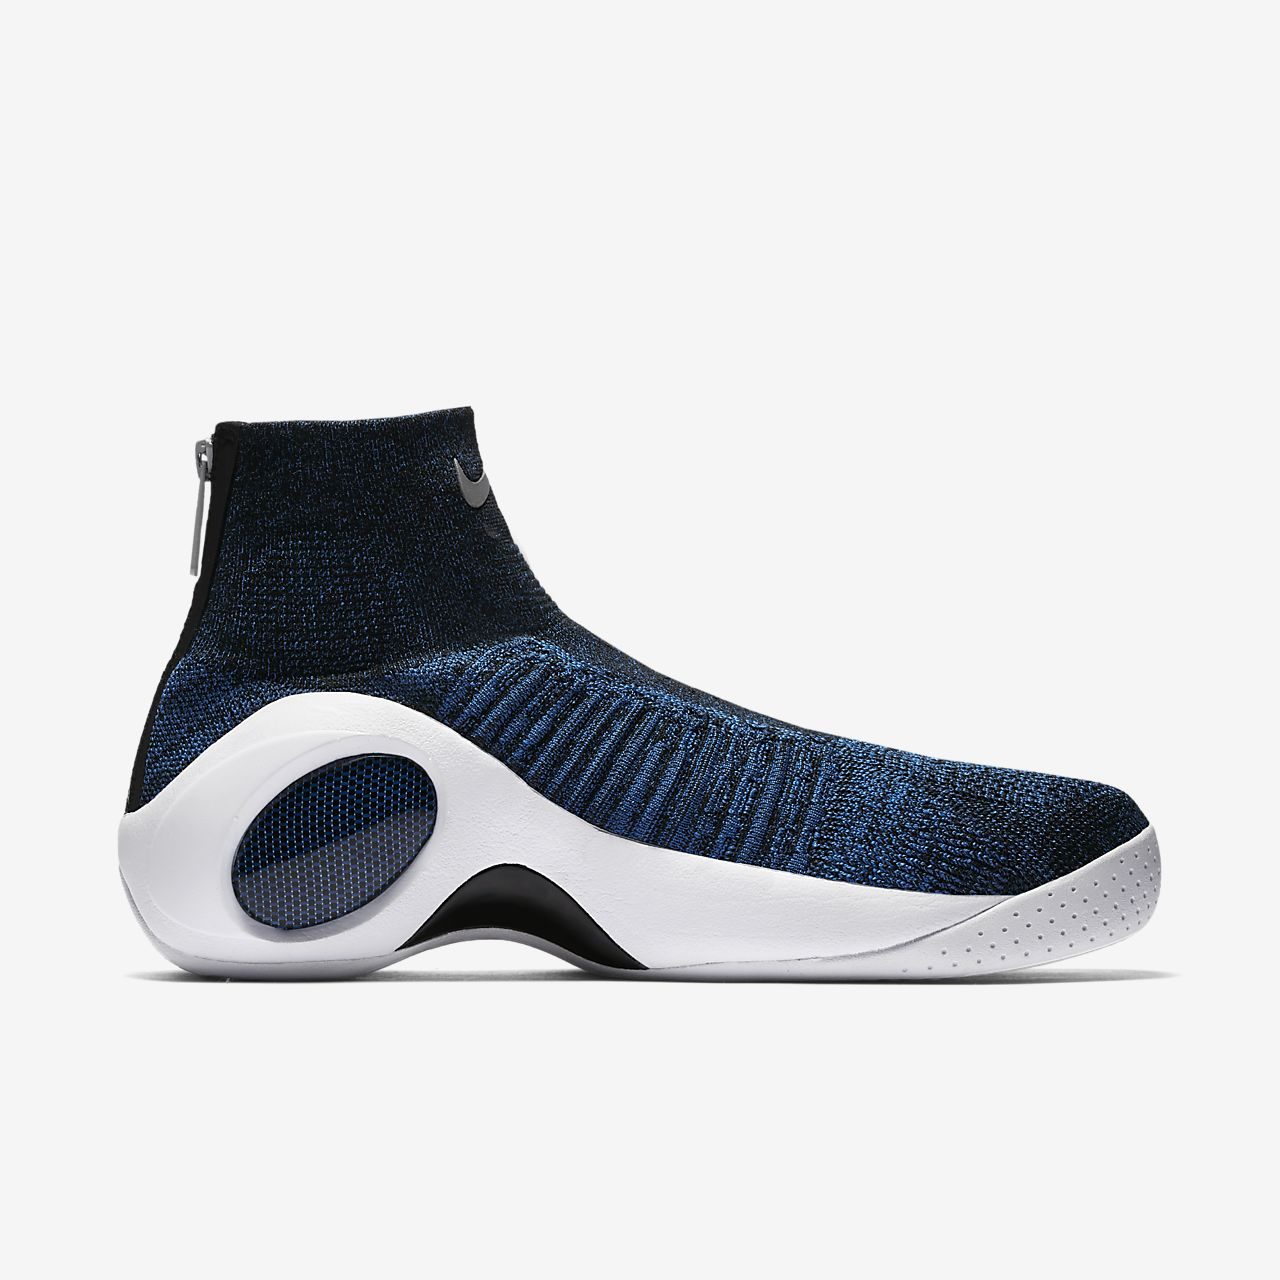 40db7771883 ... Nike Flight Bonafide Men s Shoe